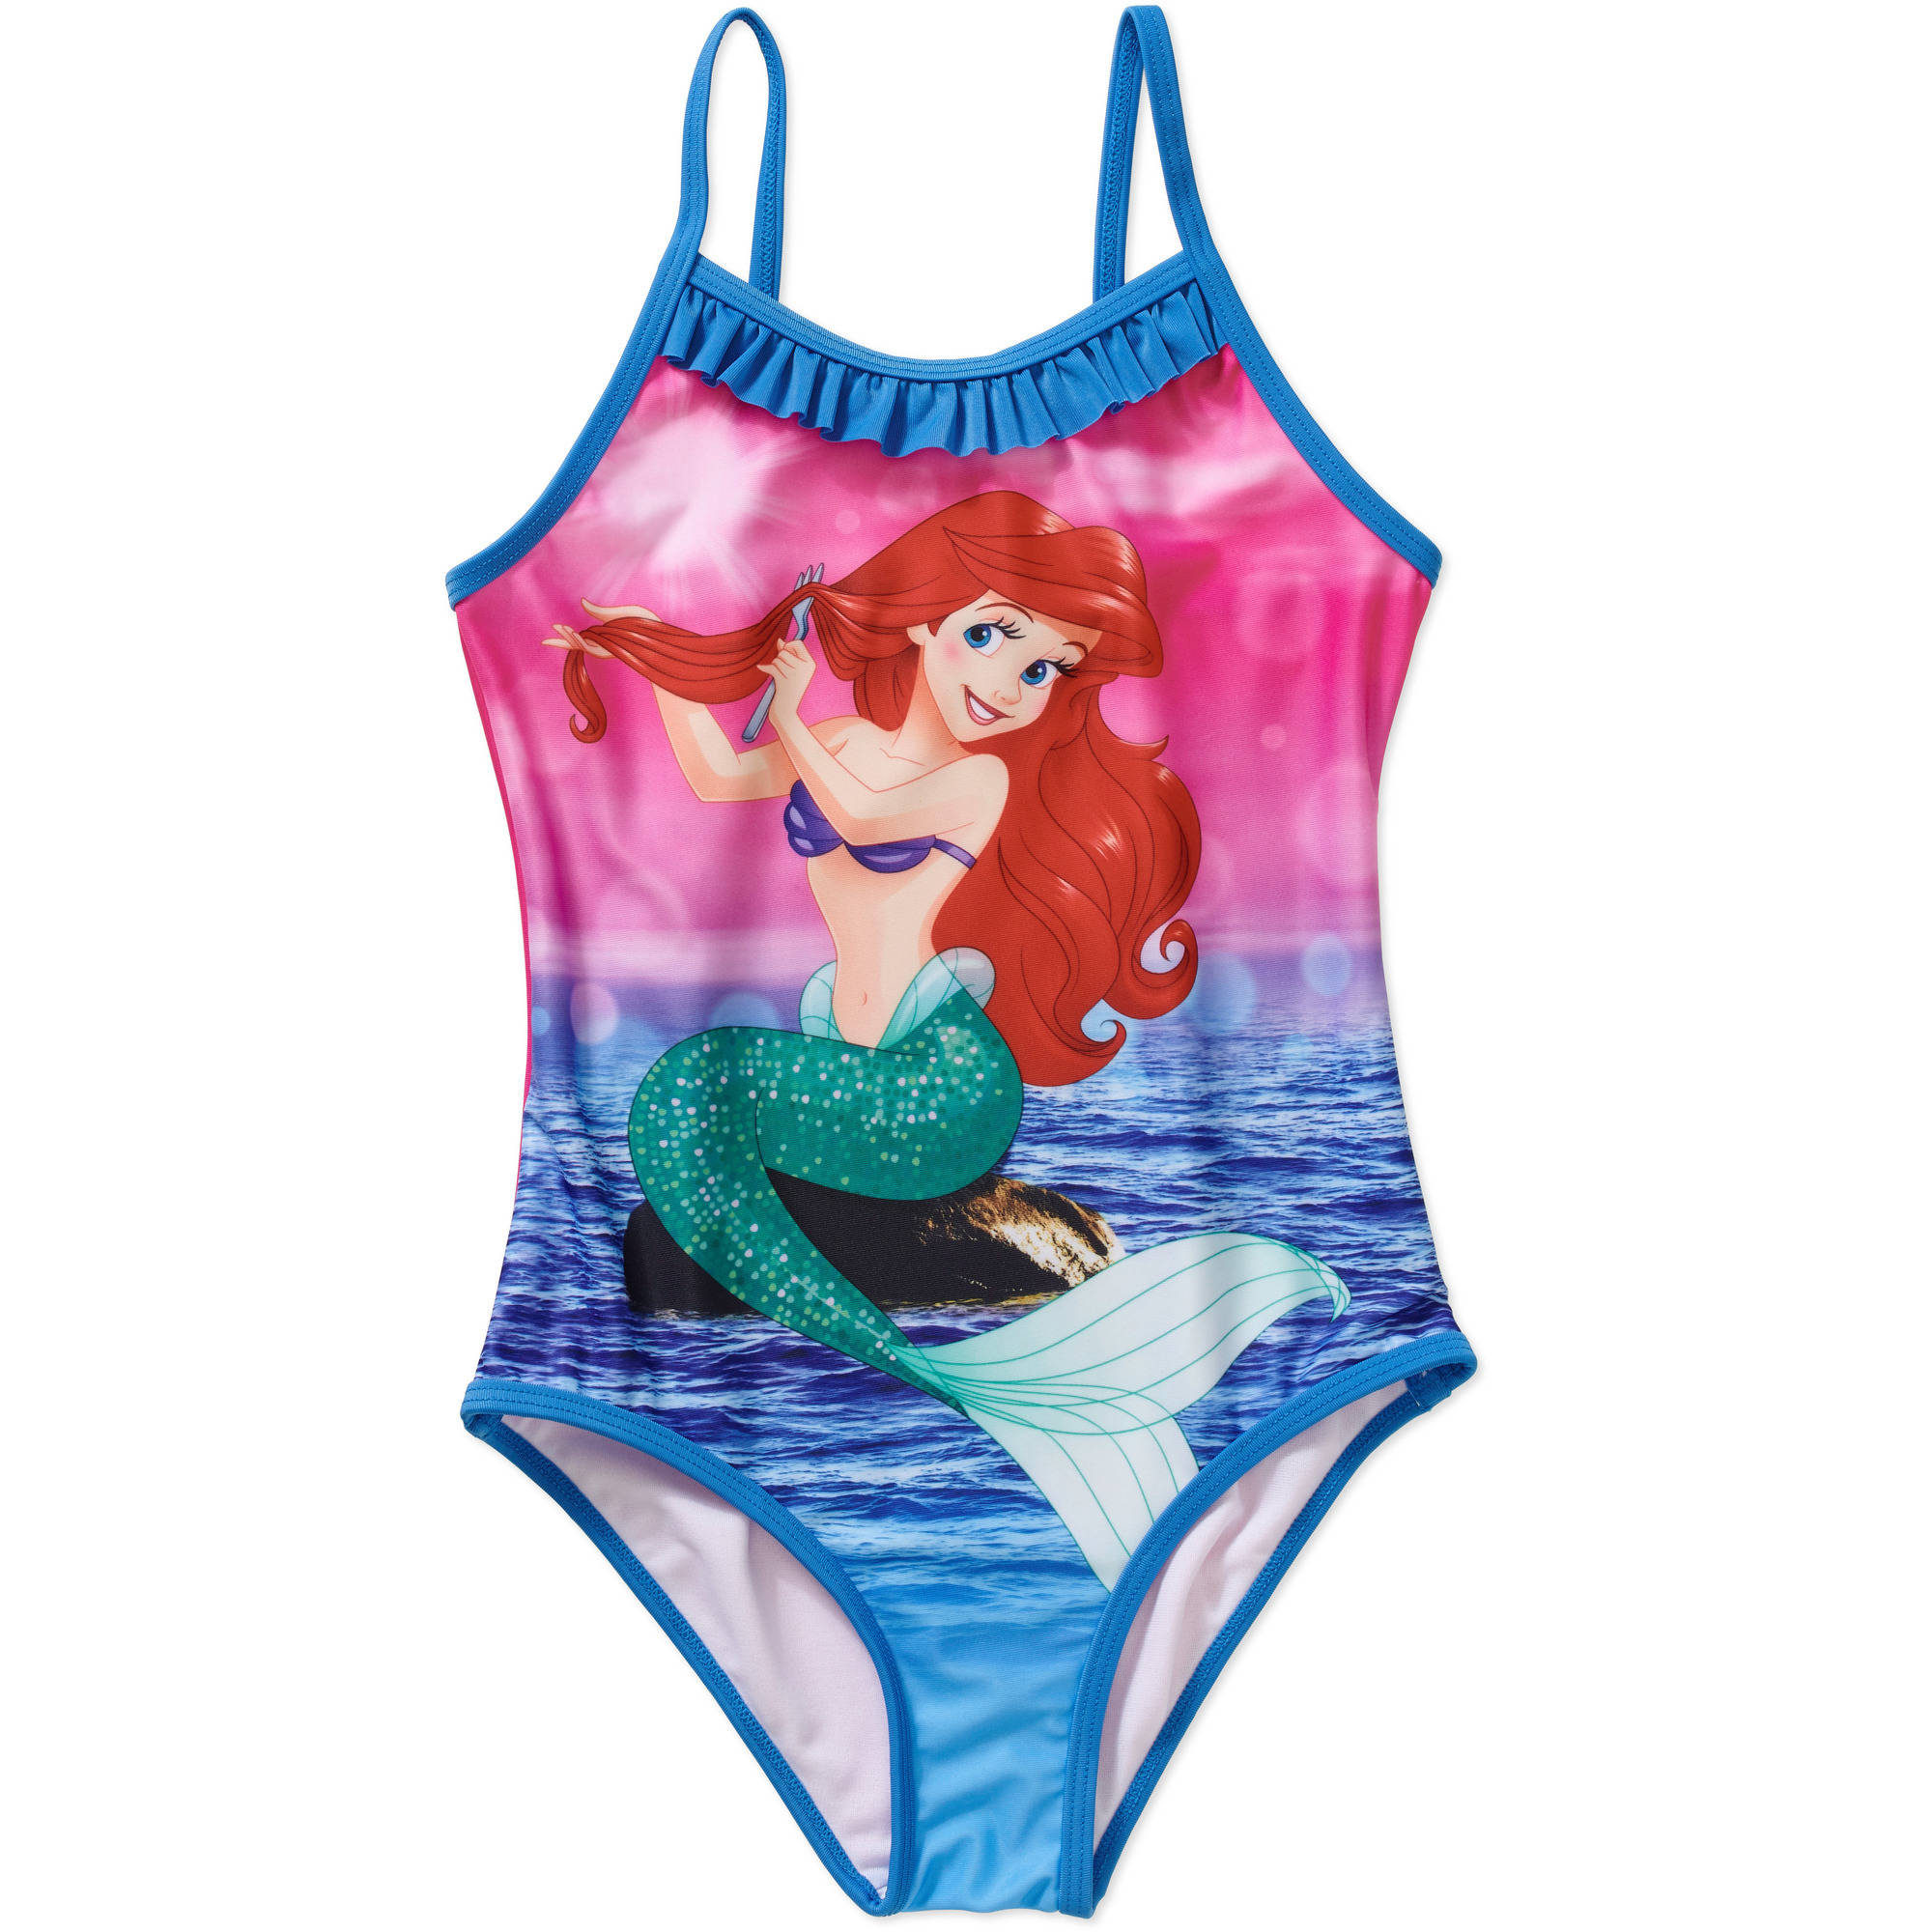 Disney Princess Little Mermaid Ariel Girls' One Piece Swimsuit